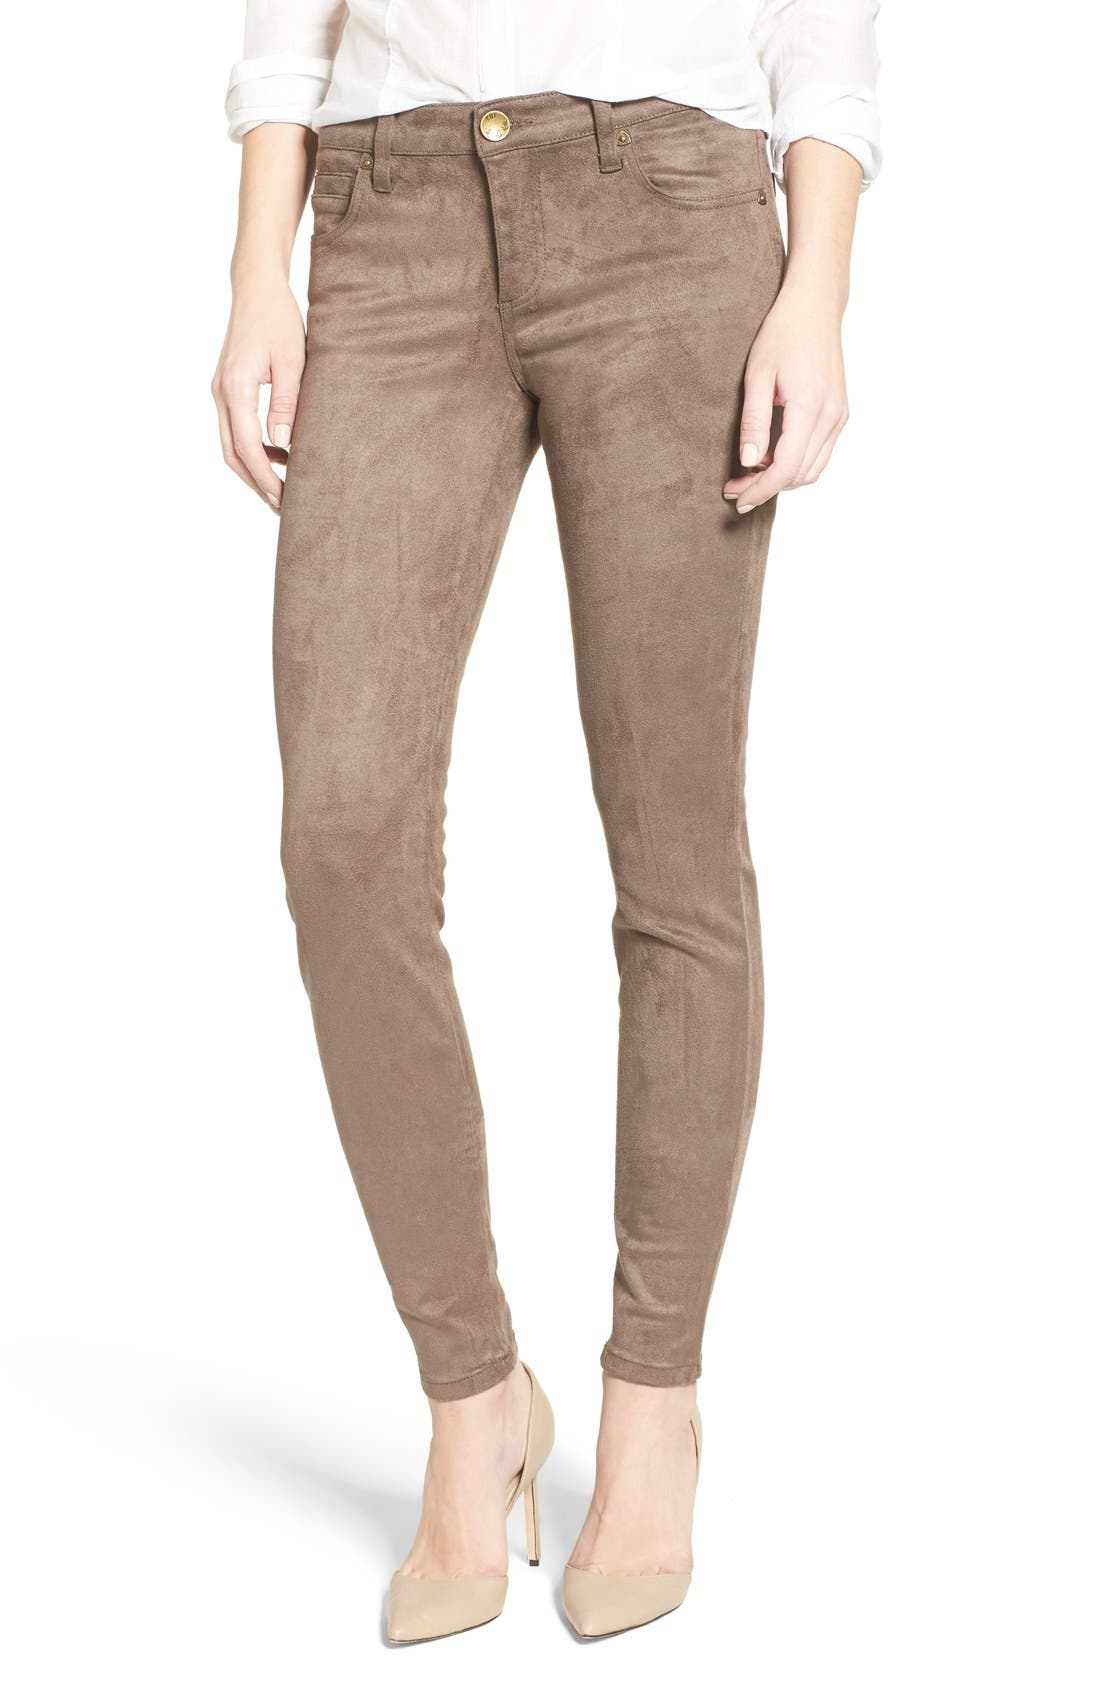 KUT FROM THE KLOTH Mia Faux Suede Skinny